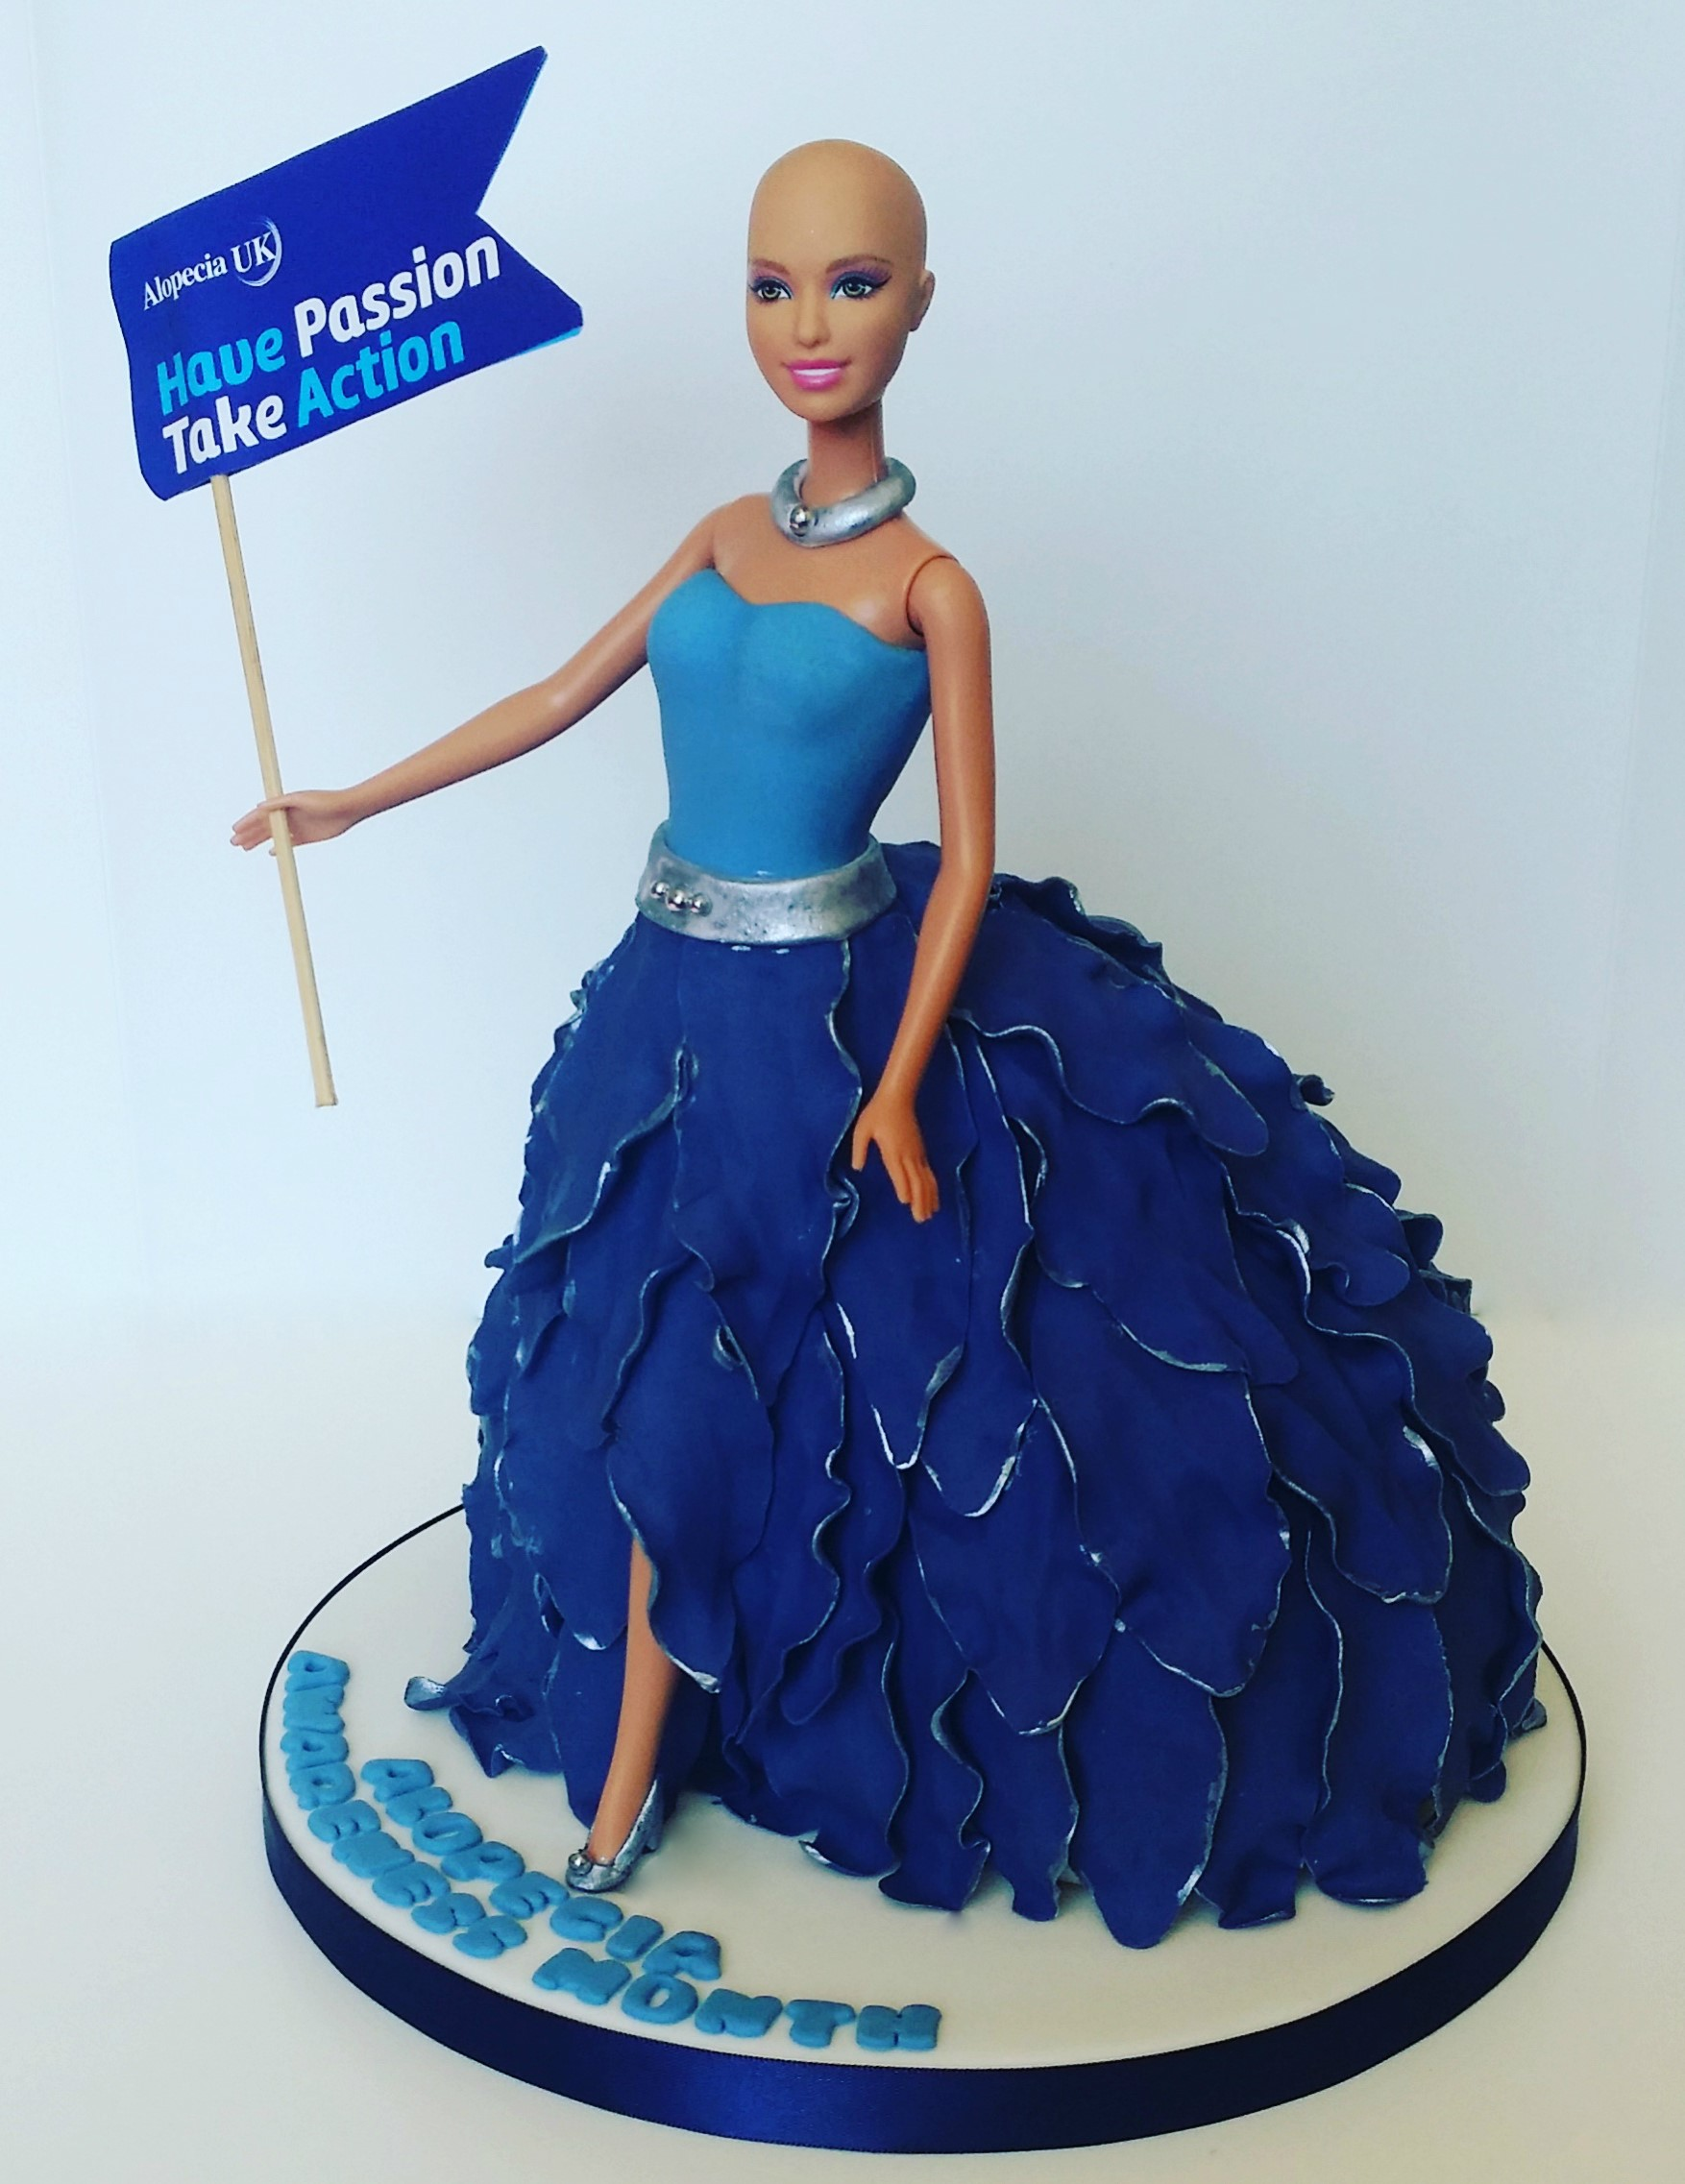 Alopecia UK Doll Cake